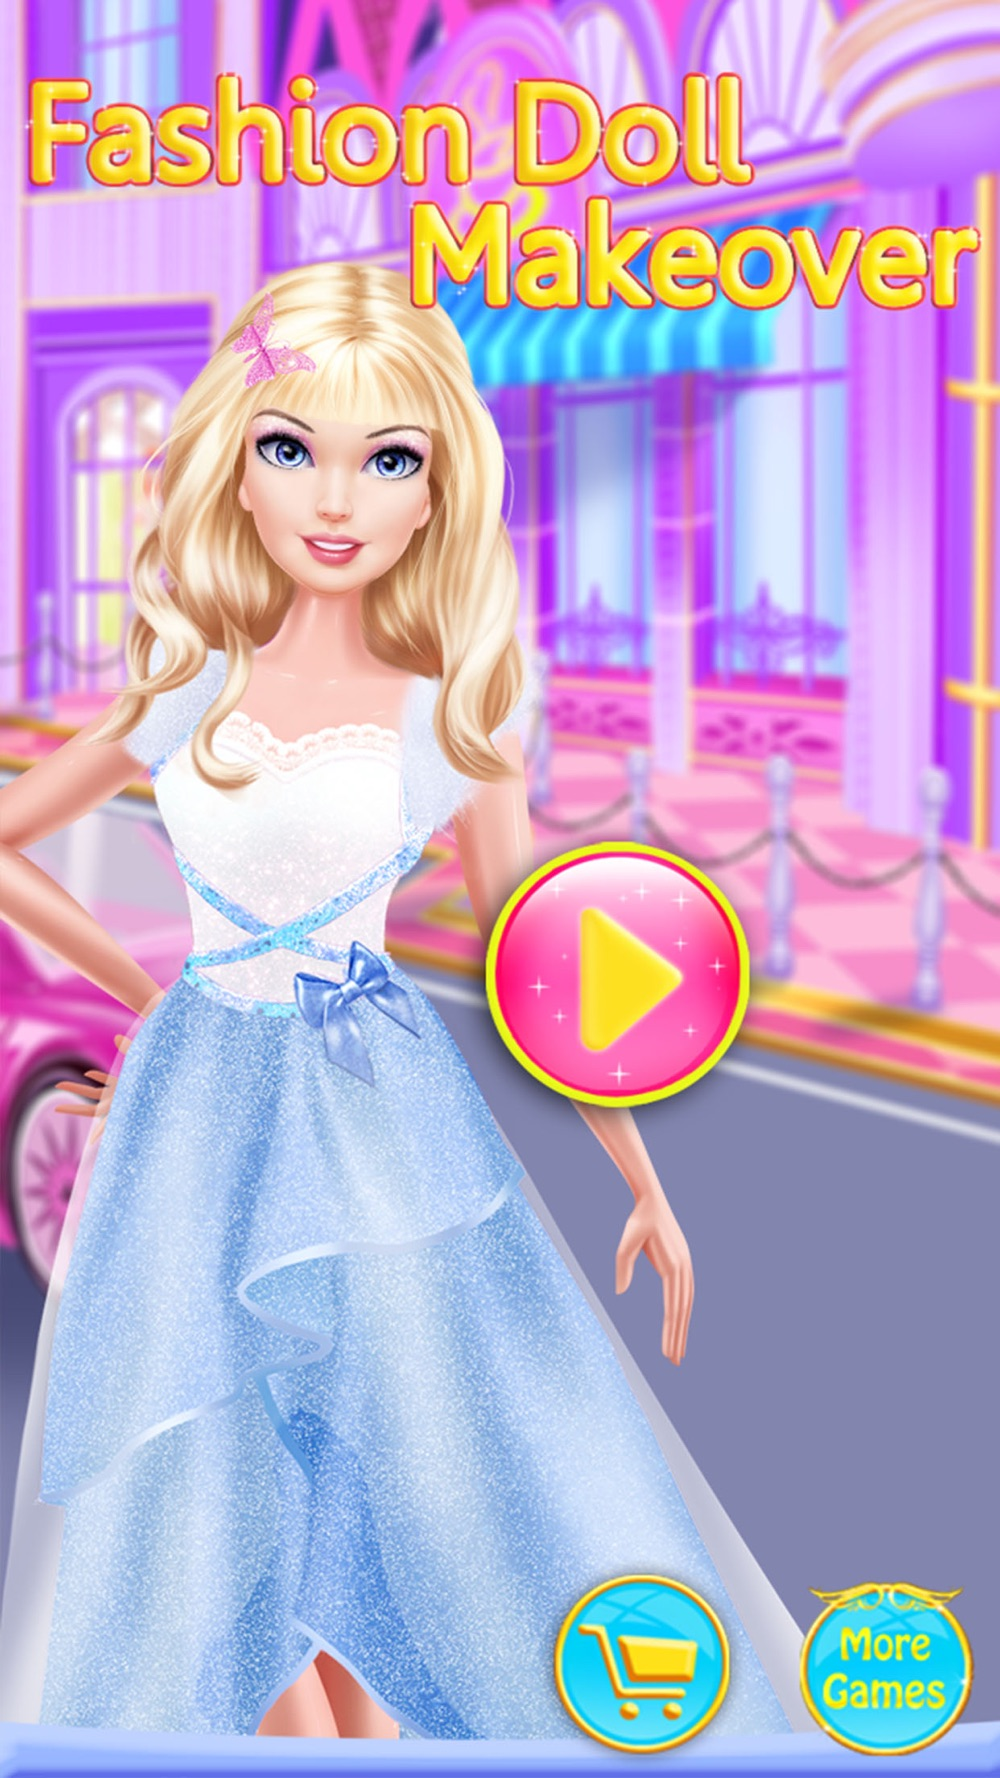 Fashion Doll Makeover hack tool